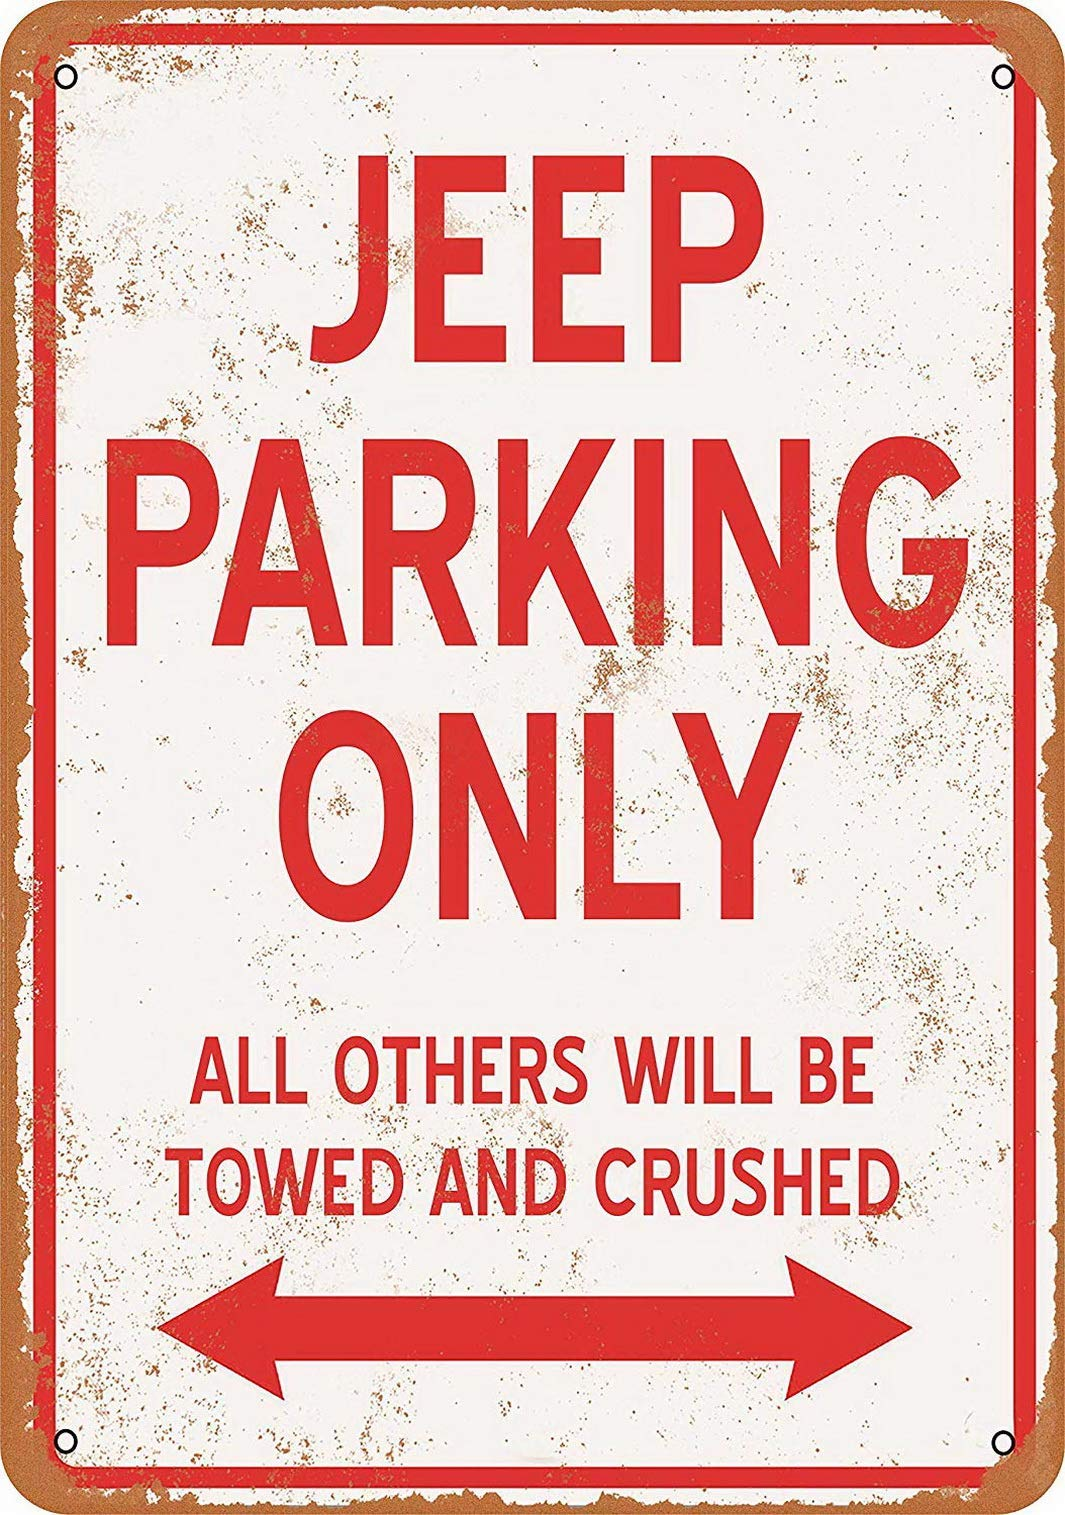 Dafony Jeep Parking Only Wall Metal Poster Retro Plaque Warning Tin Sign Vintage Iron Painting Decoration Funny Hanging Crafts for Office Bedroom Living Room Club